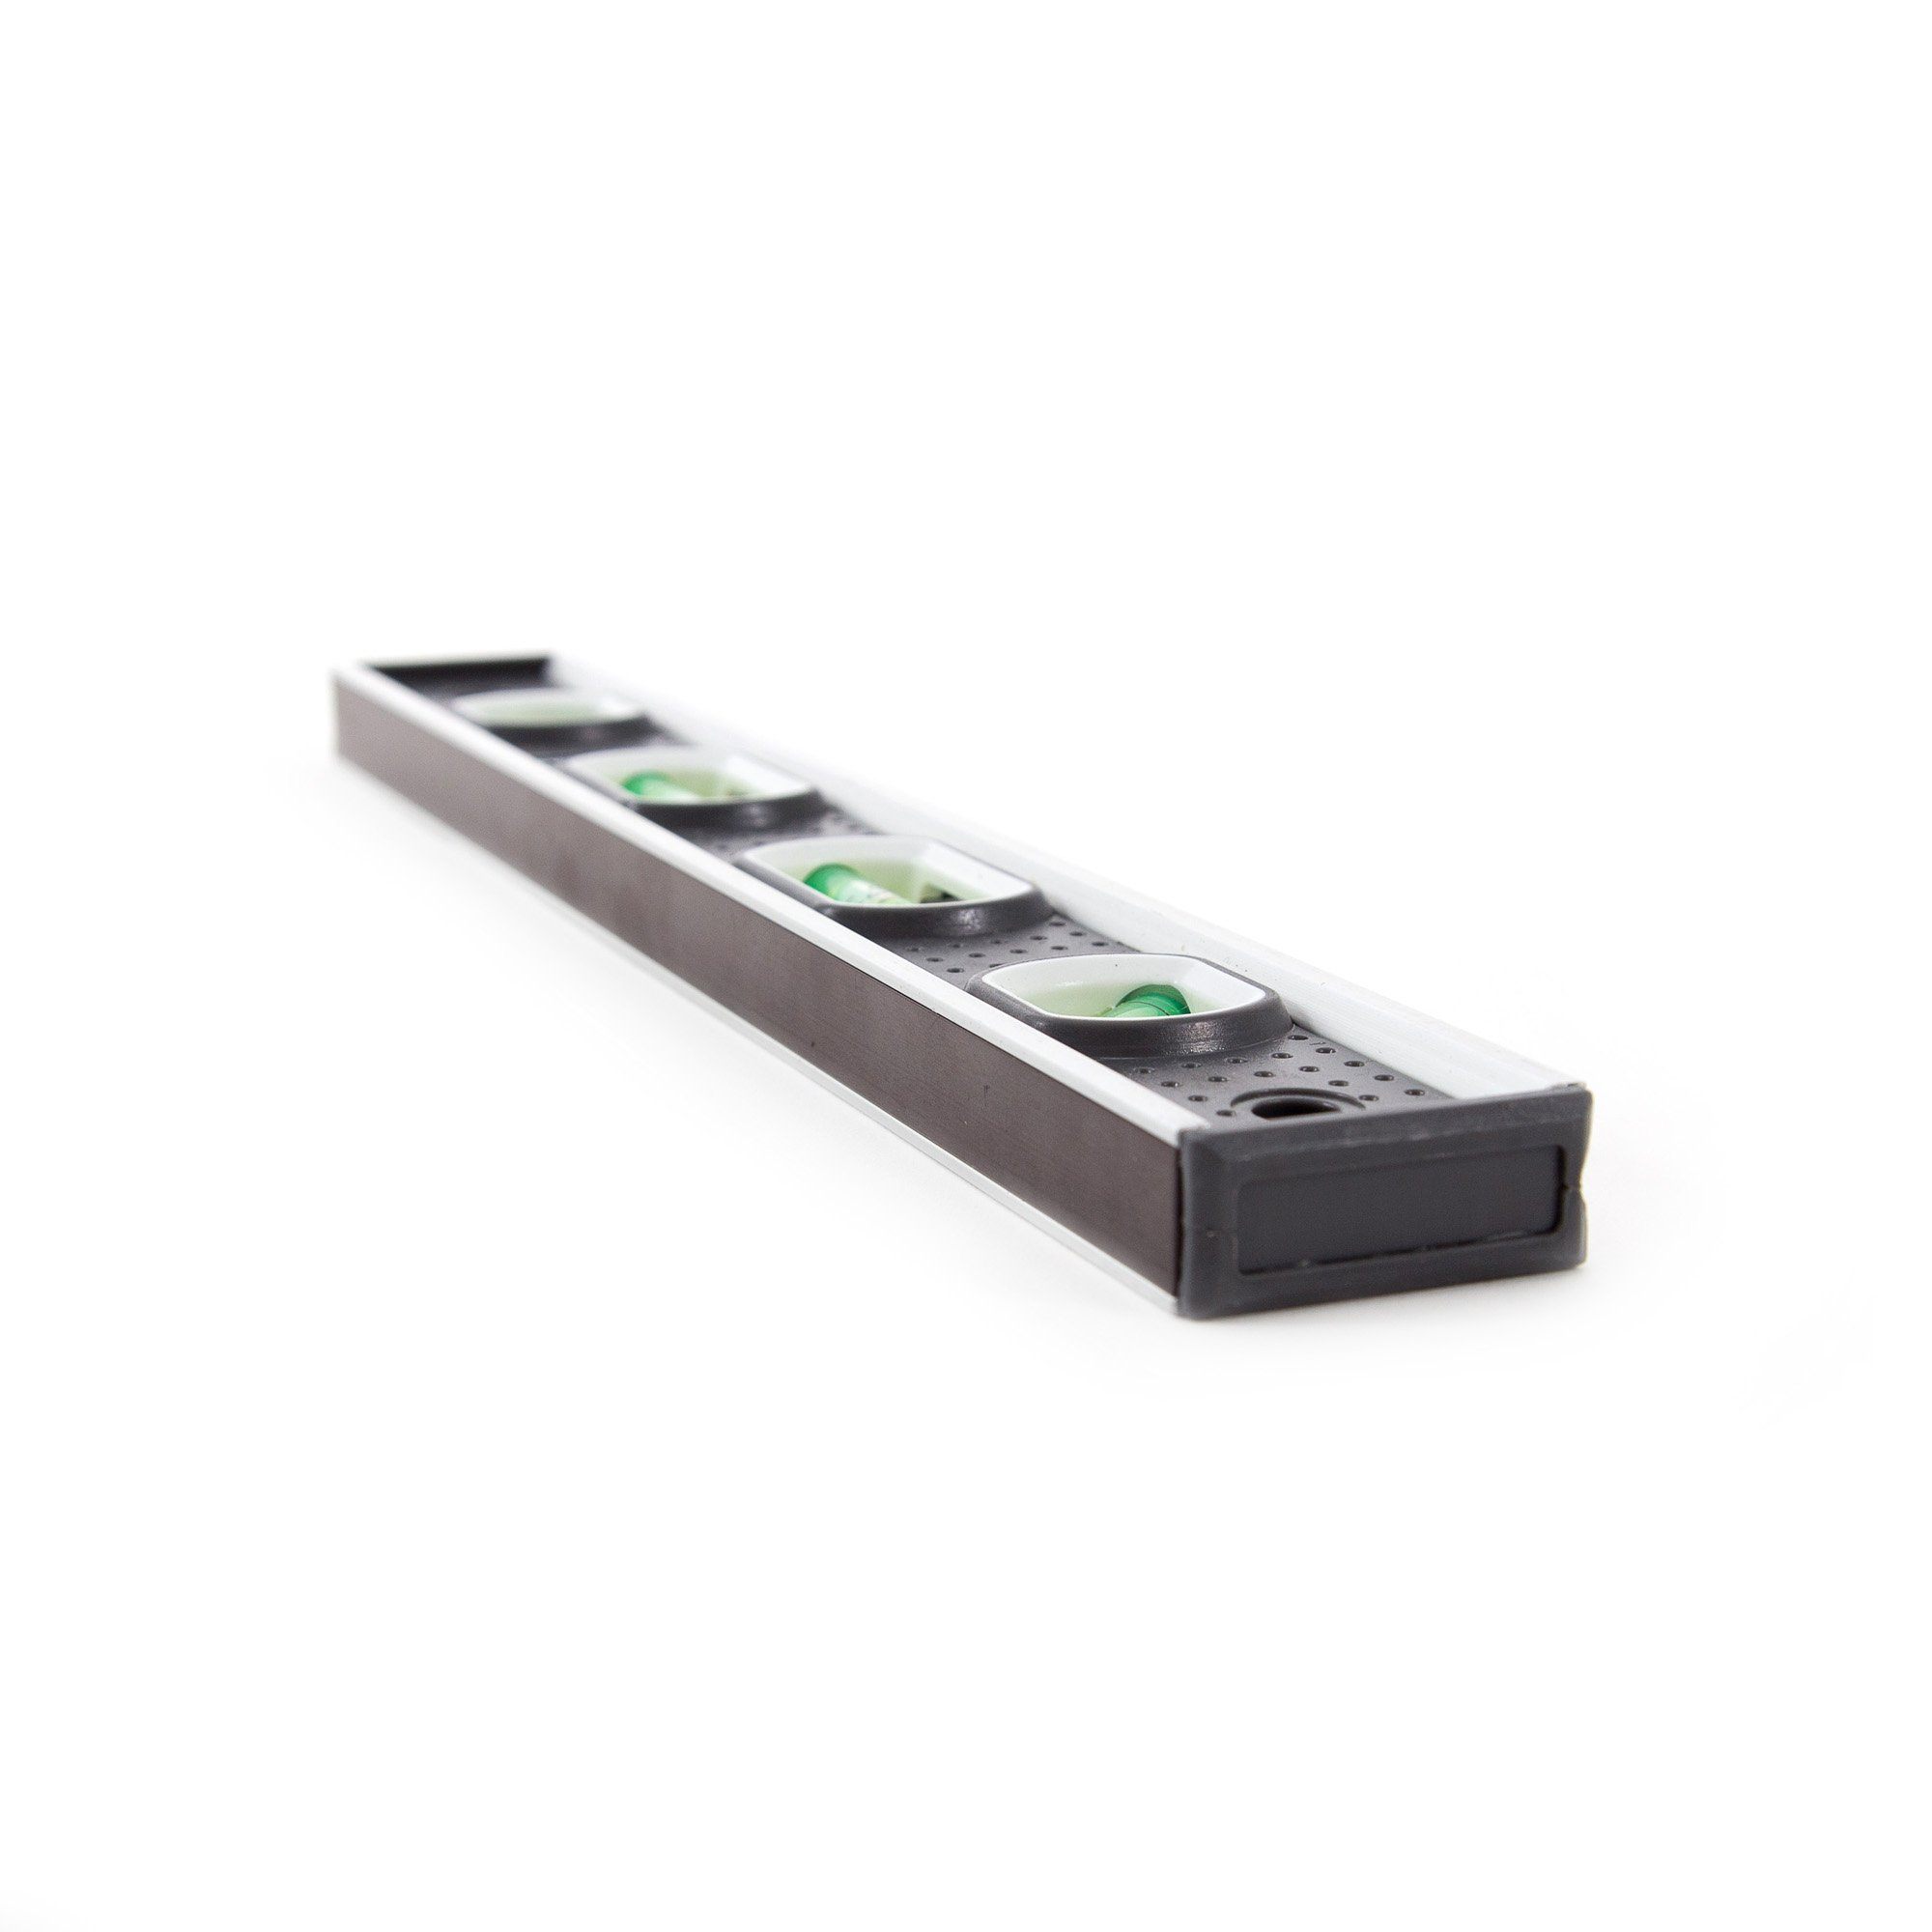 Swanson Tool SWTBL500M Tool Box Level, 12'' by Swanson Tool (Image #5)